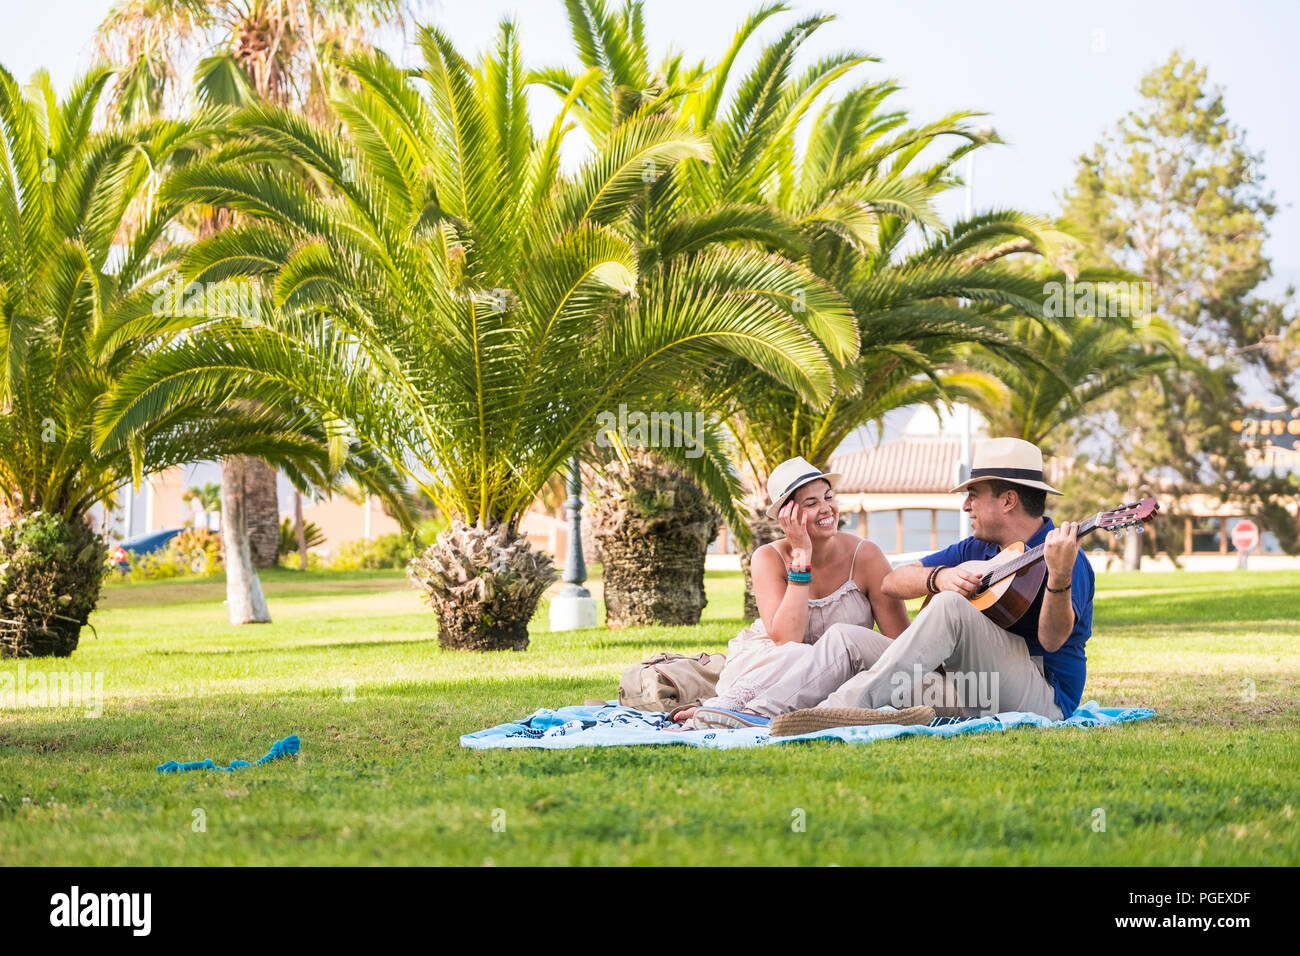 caucasian people sitting on the grass enjoying the weekend or the leisure activity together. tha man play an acoustic guitar and the girl look him wit - Stock Image